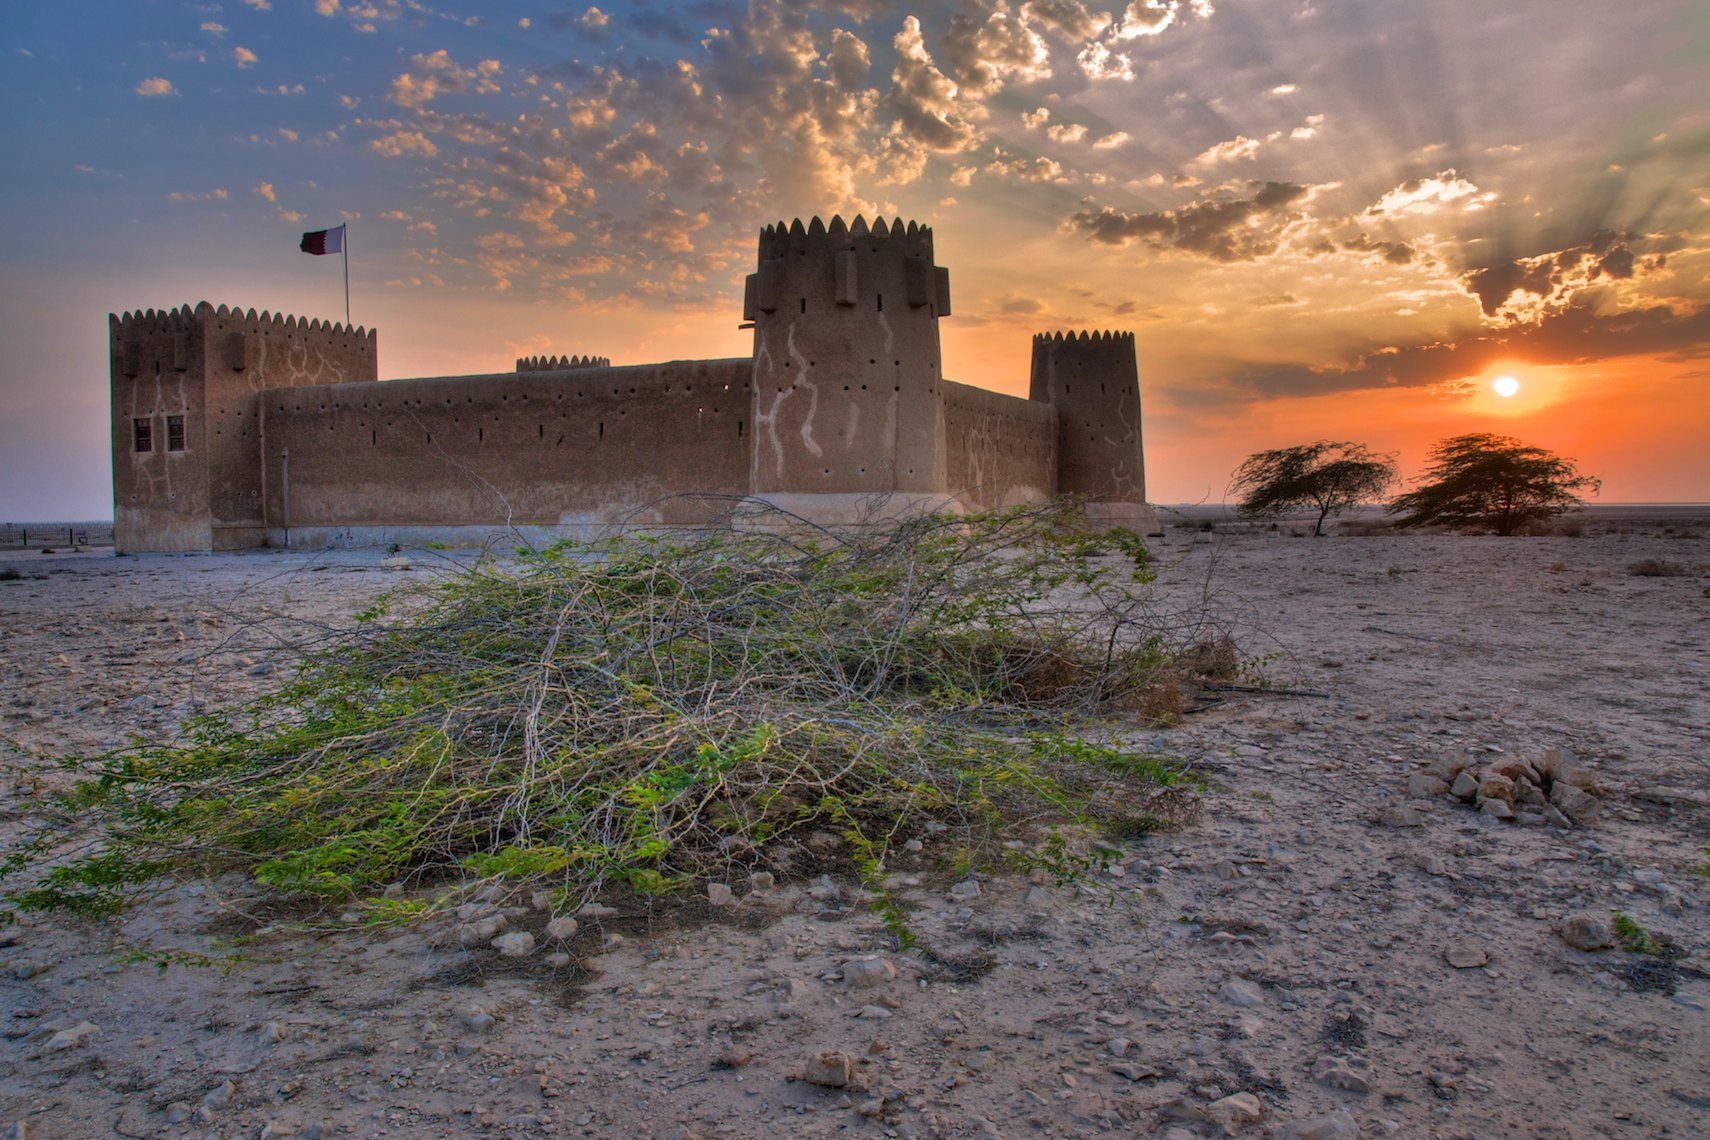 Qatar Fort Zubara shrub